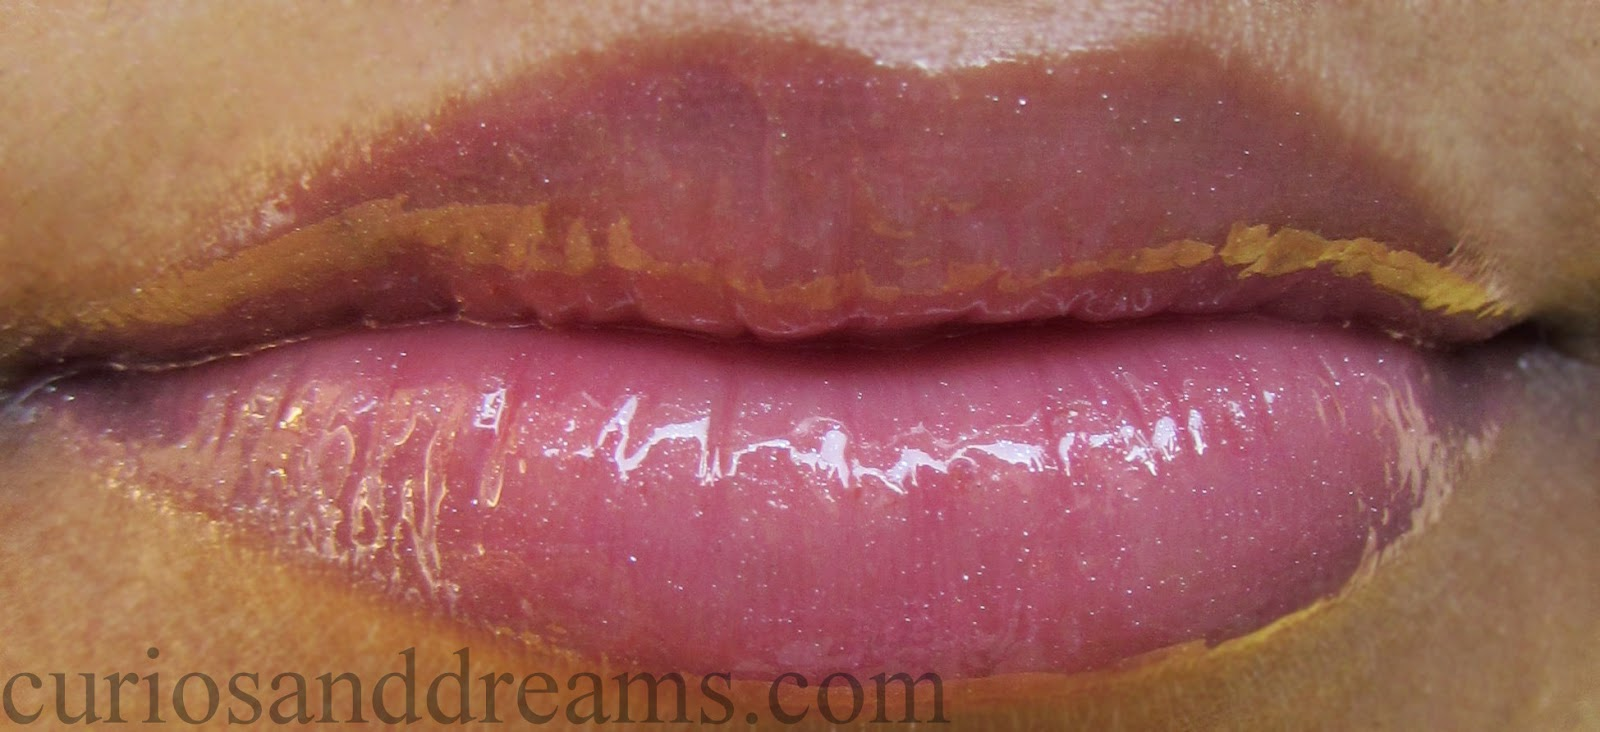 Faces Canada Go Chic Lip Gloss Raspberry, Faces Canada Go Chic Lip Gloss Raspberry reiew, Faces Canada Go Chic Lip Gloss Raspberry swatch, Faces Canada Go Chic Lip Gloss review